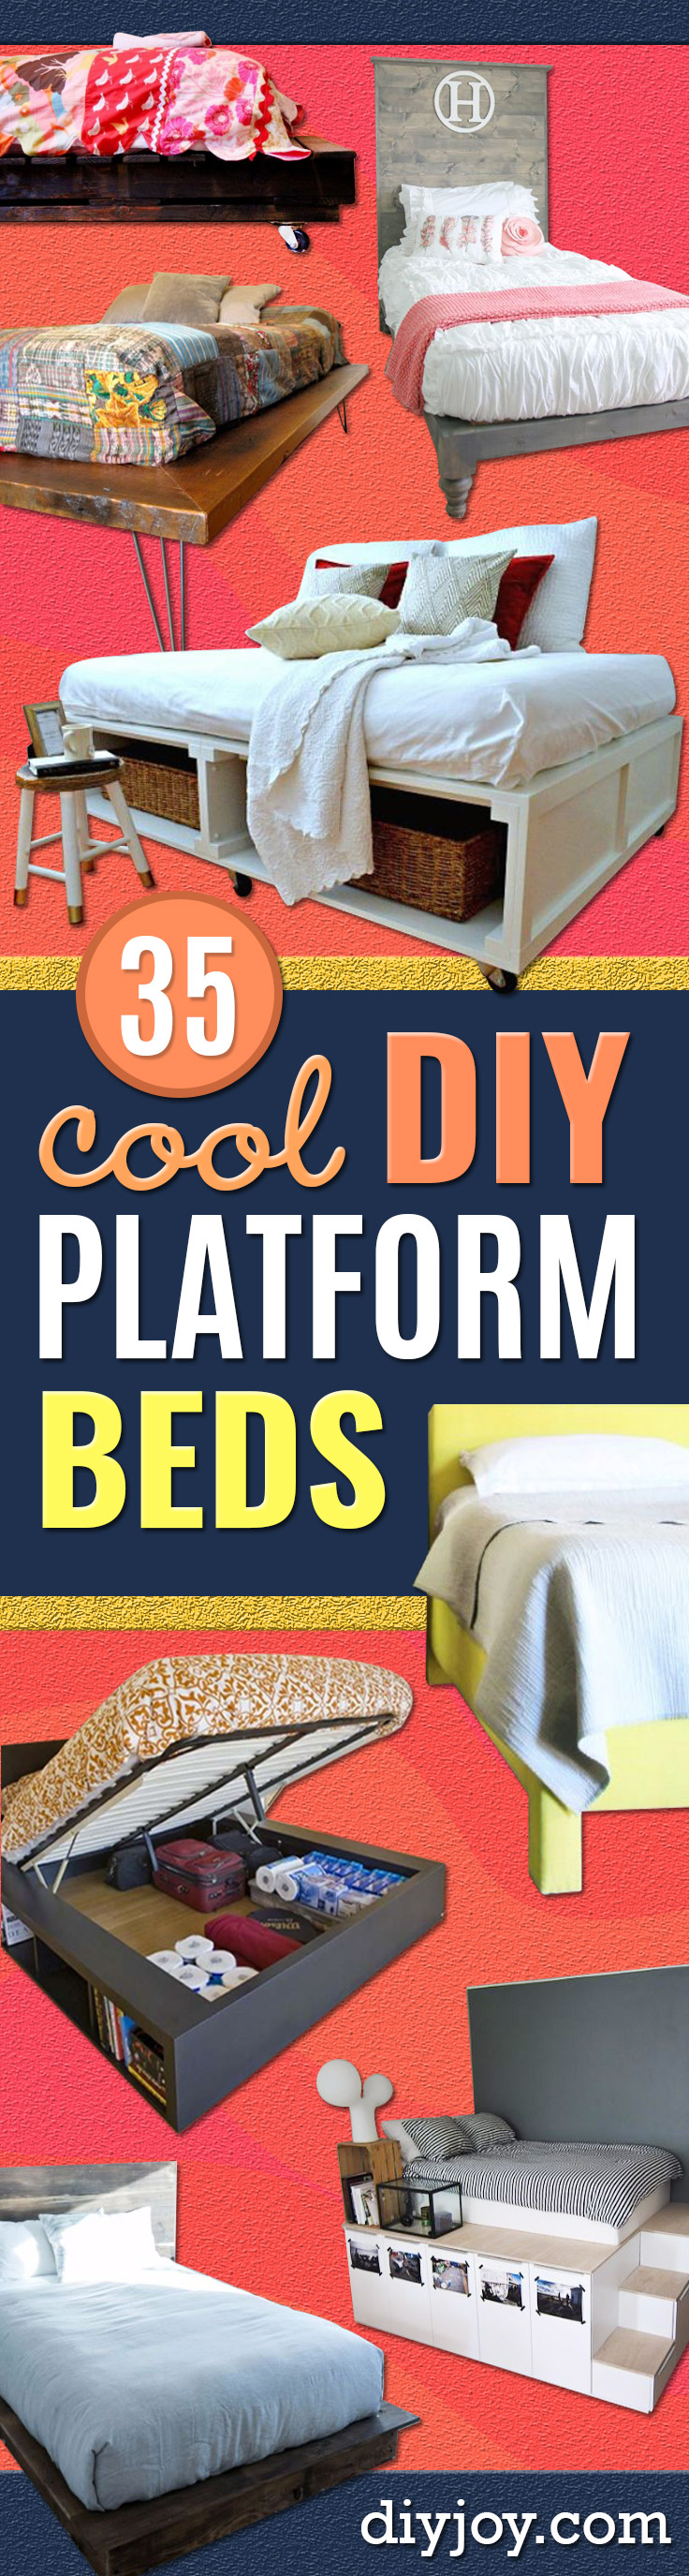 35 diy platform beds for an impressive bedroom diy platform beds easy do it yourself bed projects step by step tutorials for solutioingenieria Gallery